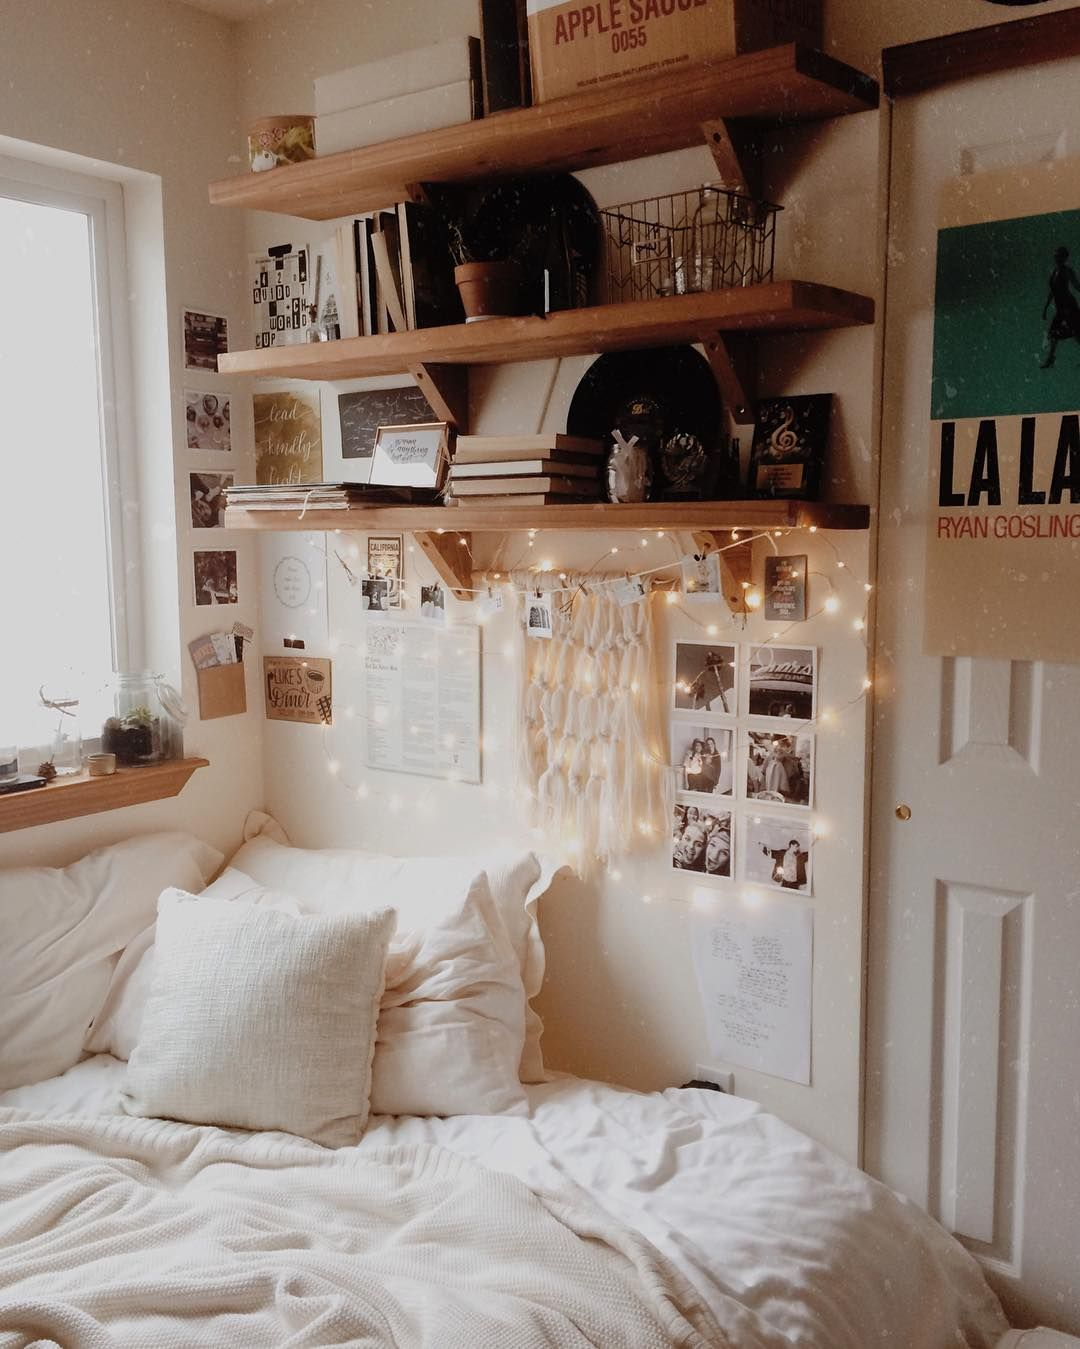 Décoration Chambre à Coucher Youtube Stonexoxstone Youtube Ig Pin Tumblr Snapchat